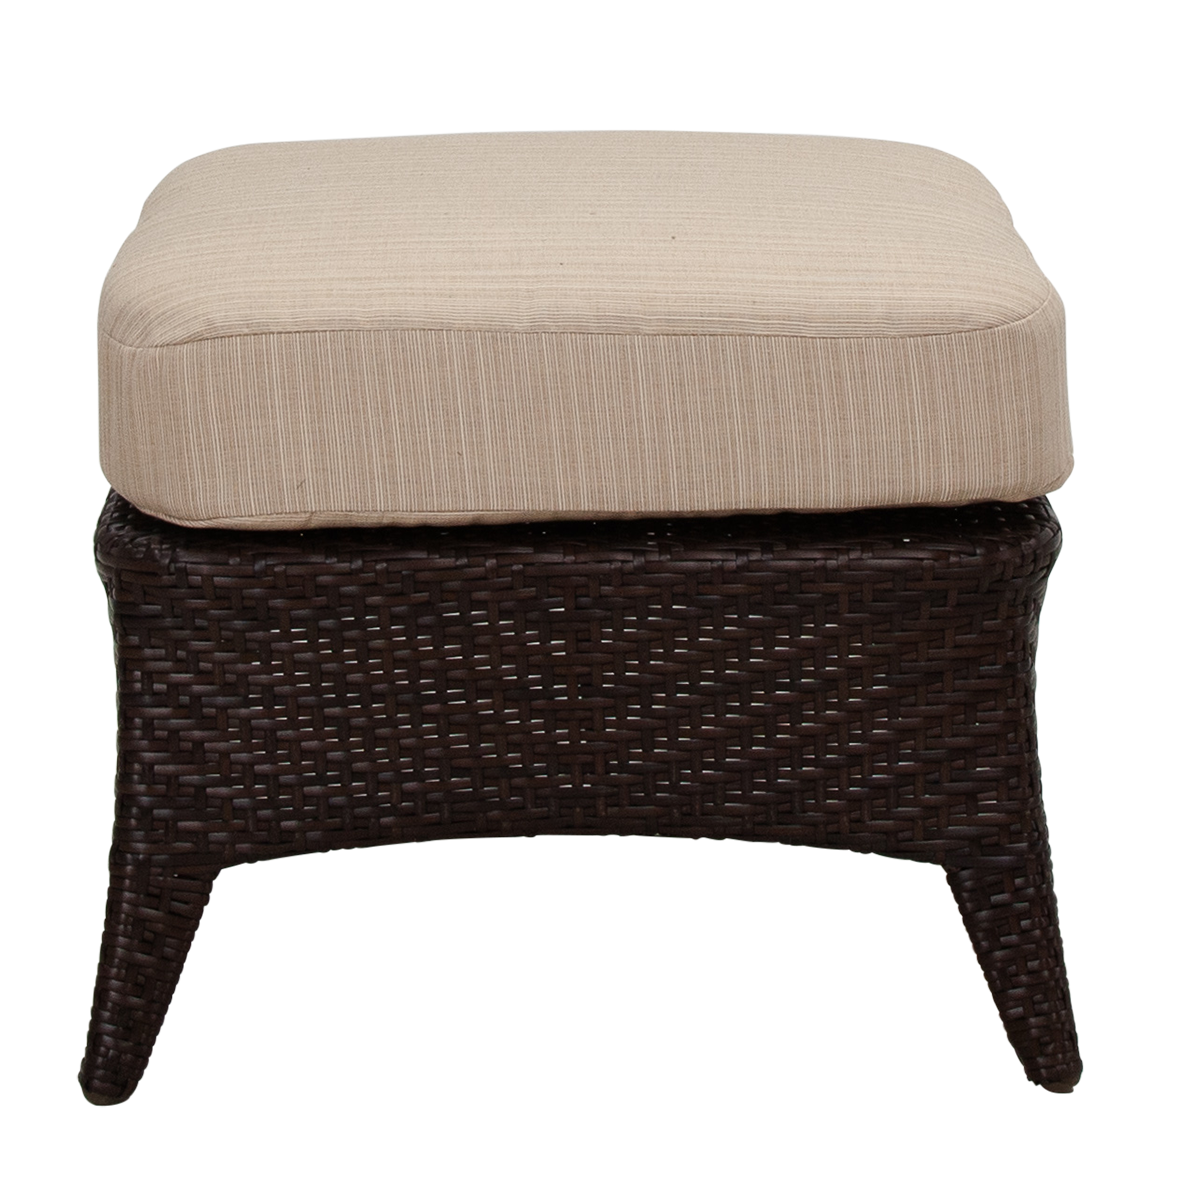 Picture of BAHIA PROMO CHAIR OTTOMAN